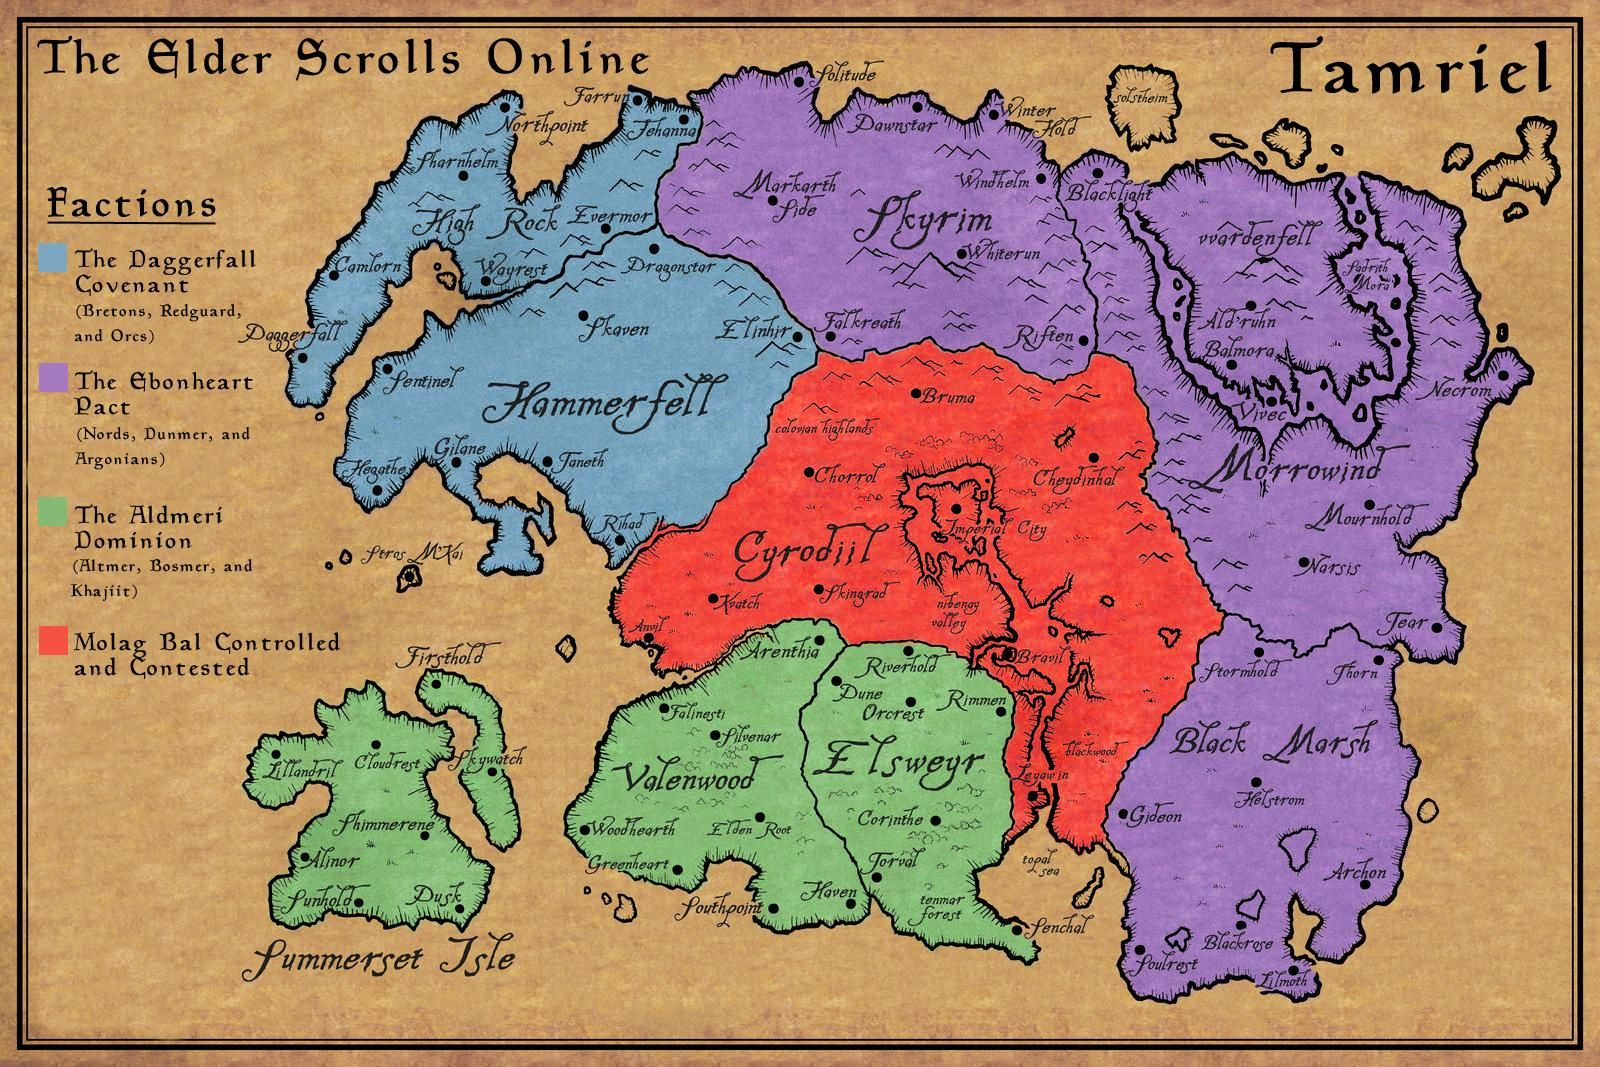 Elder Scrolls Online Takes Place On The Fantasy World Of